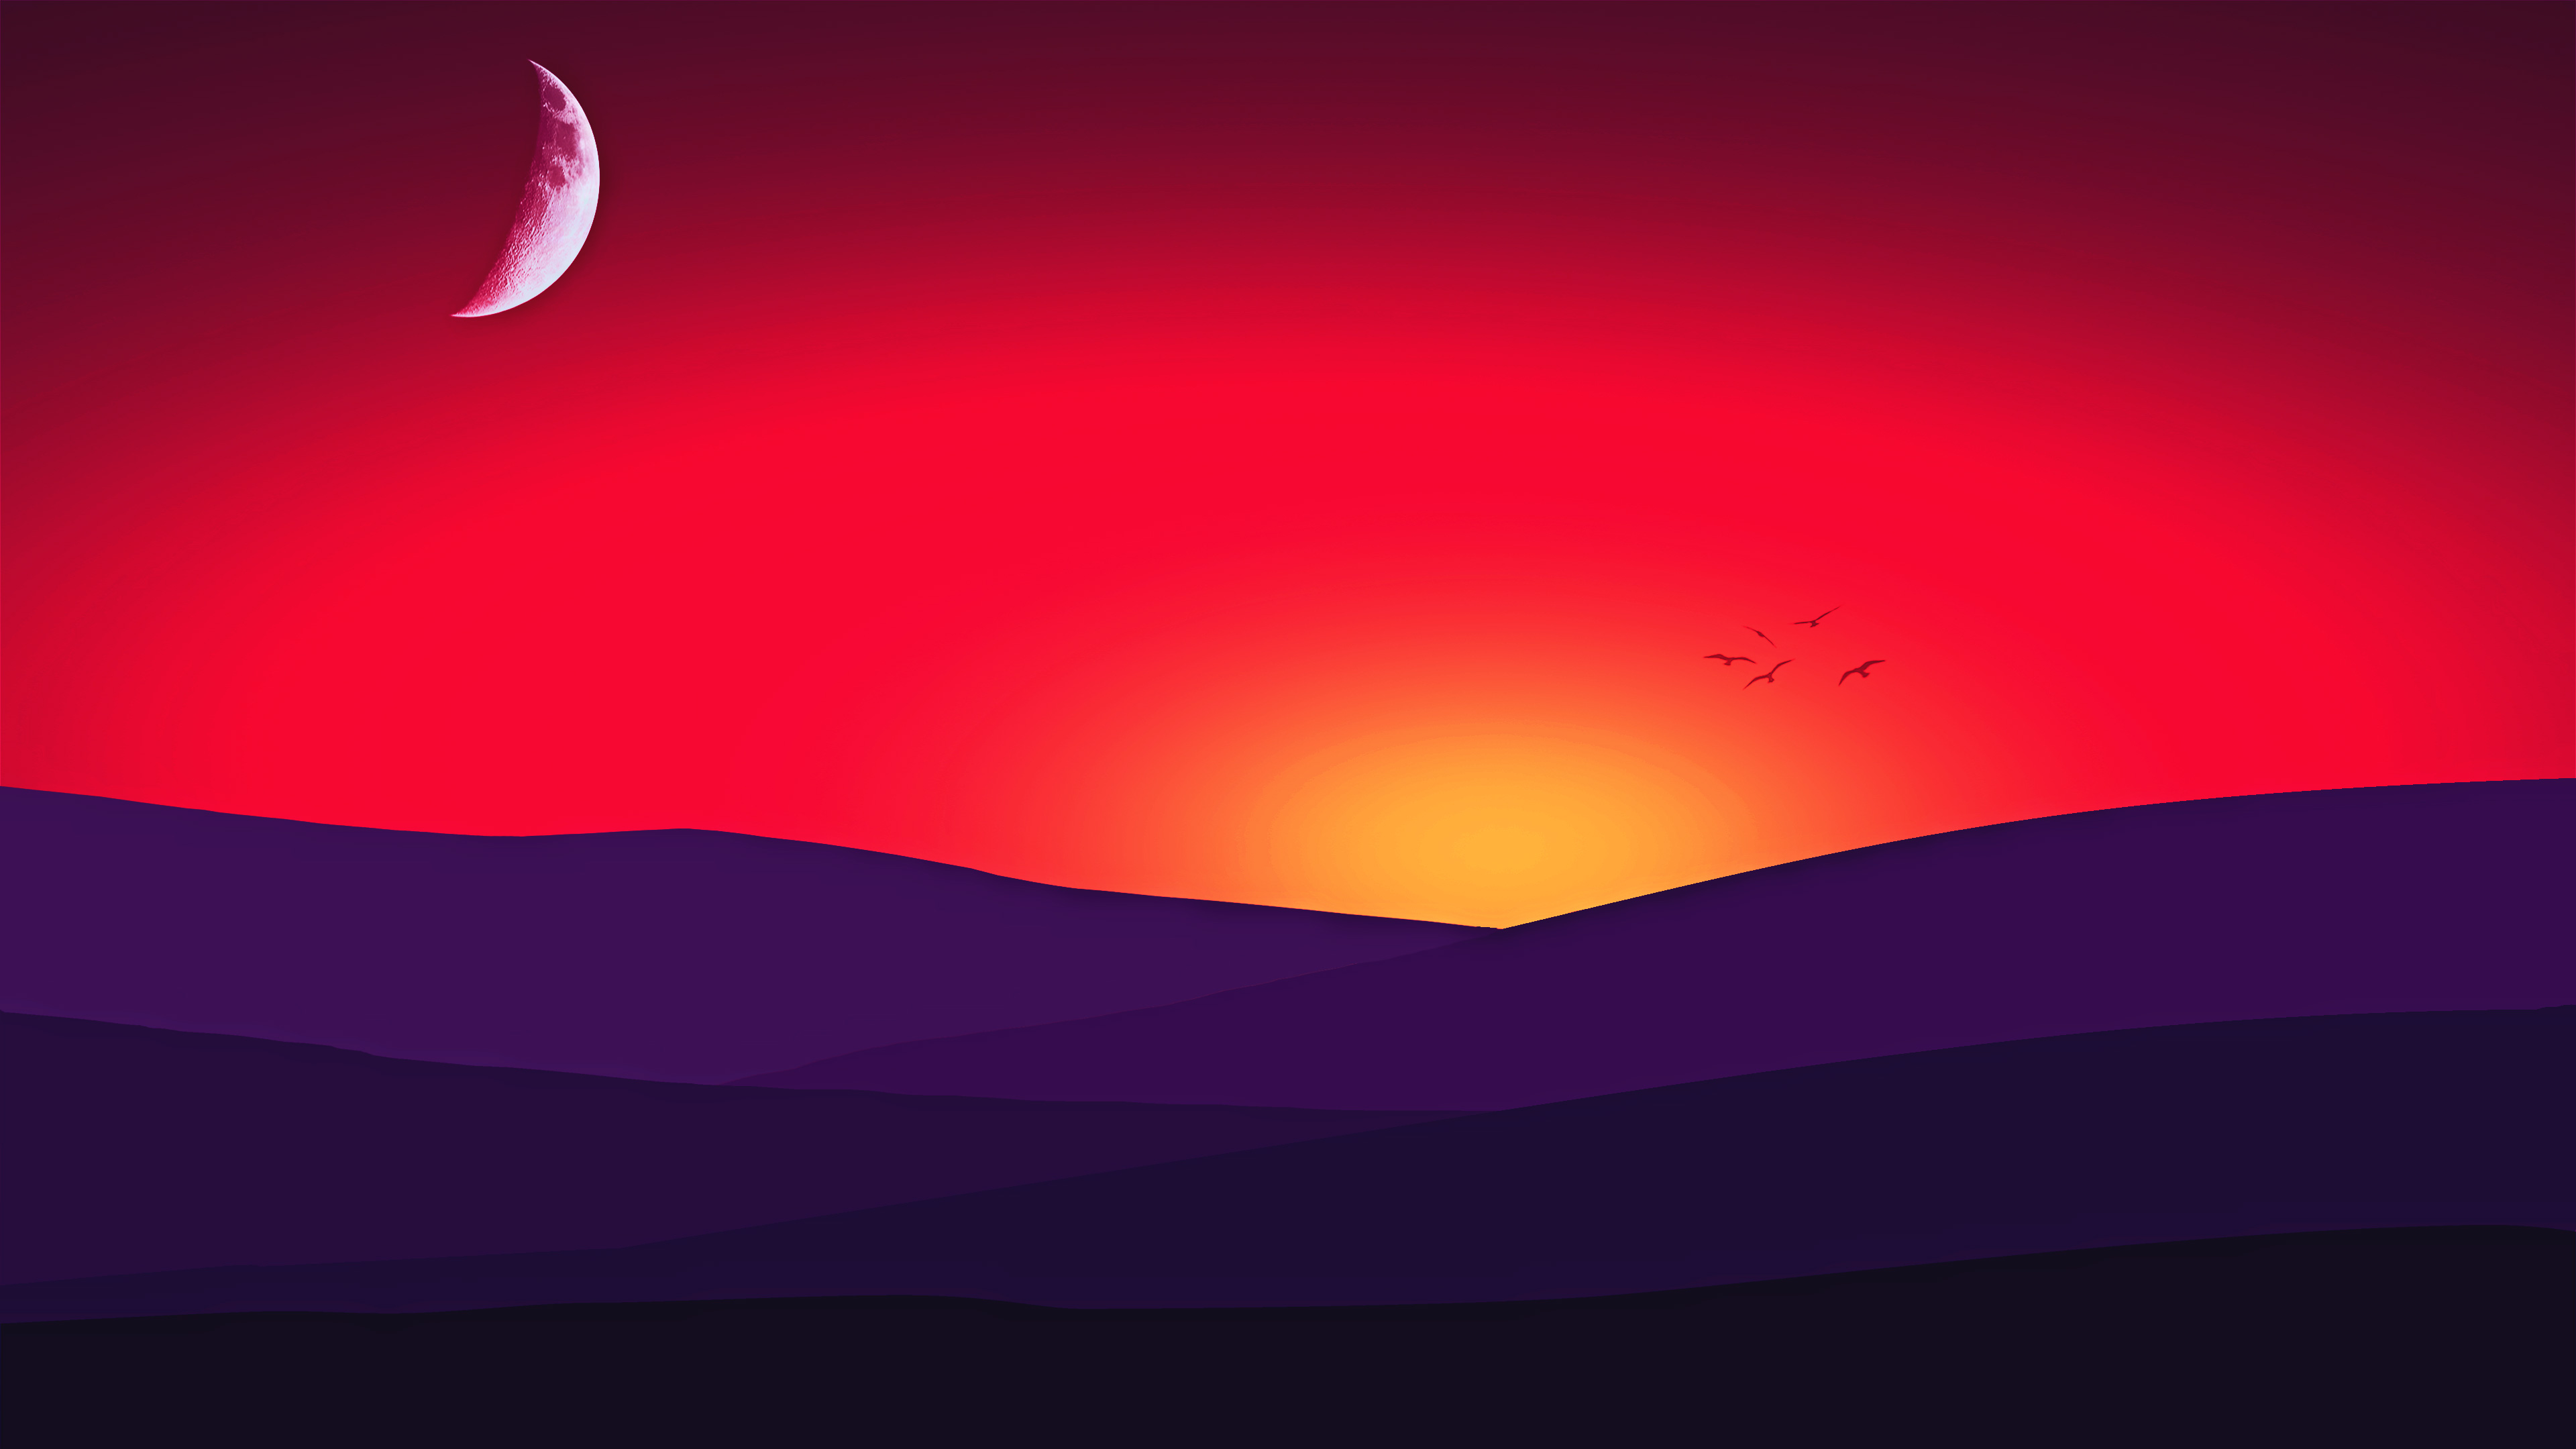 red mountains sunset birds 4k 1540750331 - Red Mountains Sunset Birds 4k - sunset wallpapers, mountains wallpapers, minimalism wallpapers, hd-wallpapers, digital art wallpapers, birds wallpapers, artwork wallpapers, artist wallpapers, 4k-wallpapers